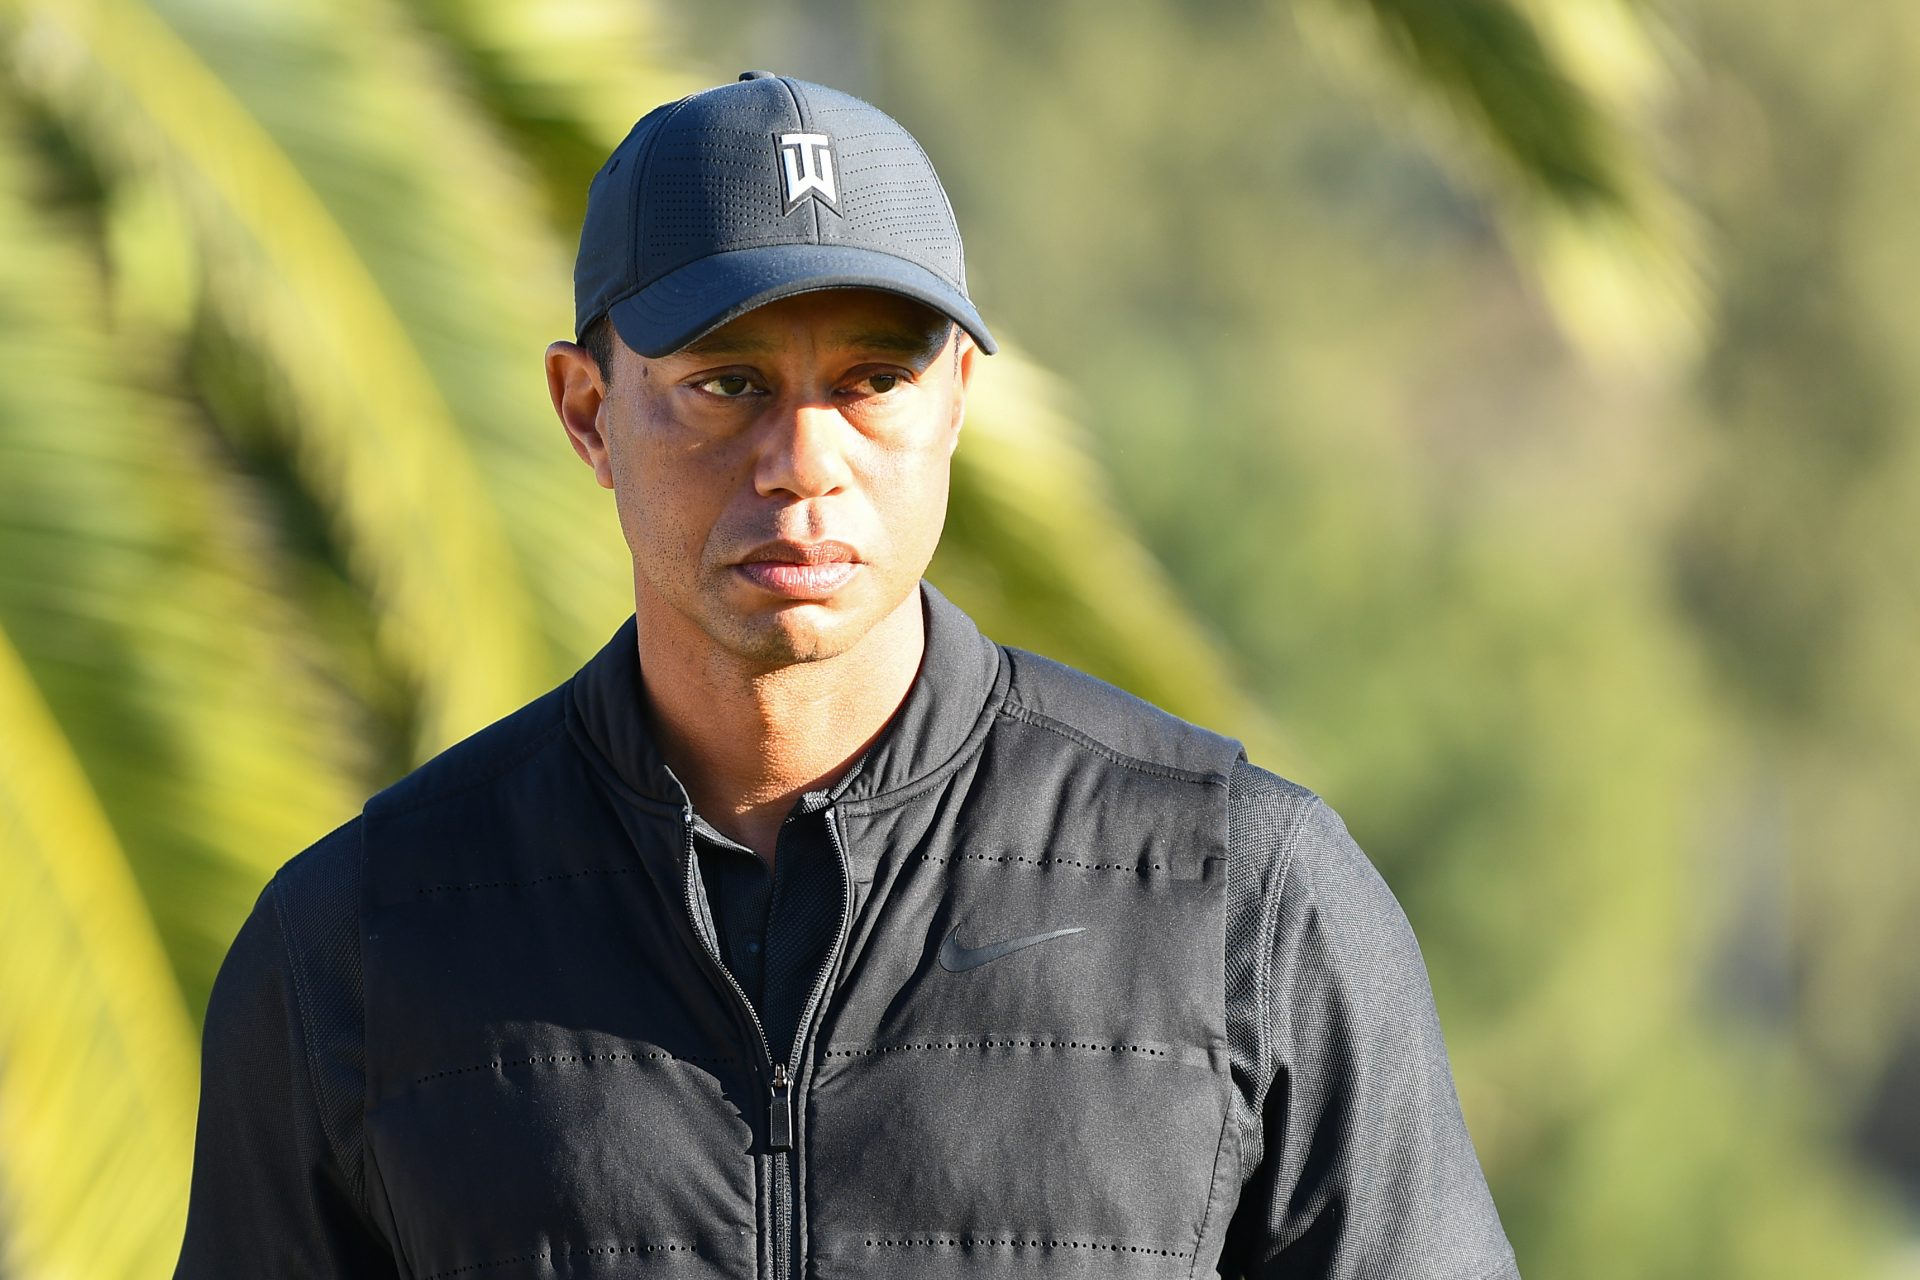 Tiger Woods: the causes of his shocking car accident